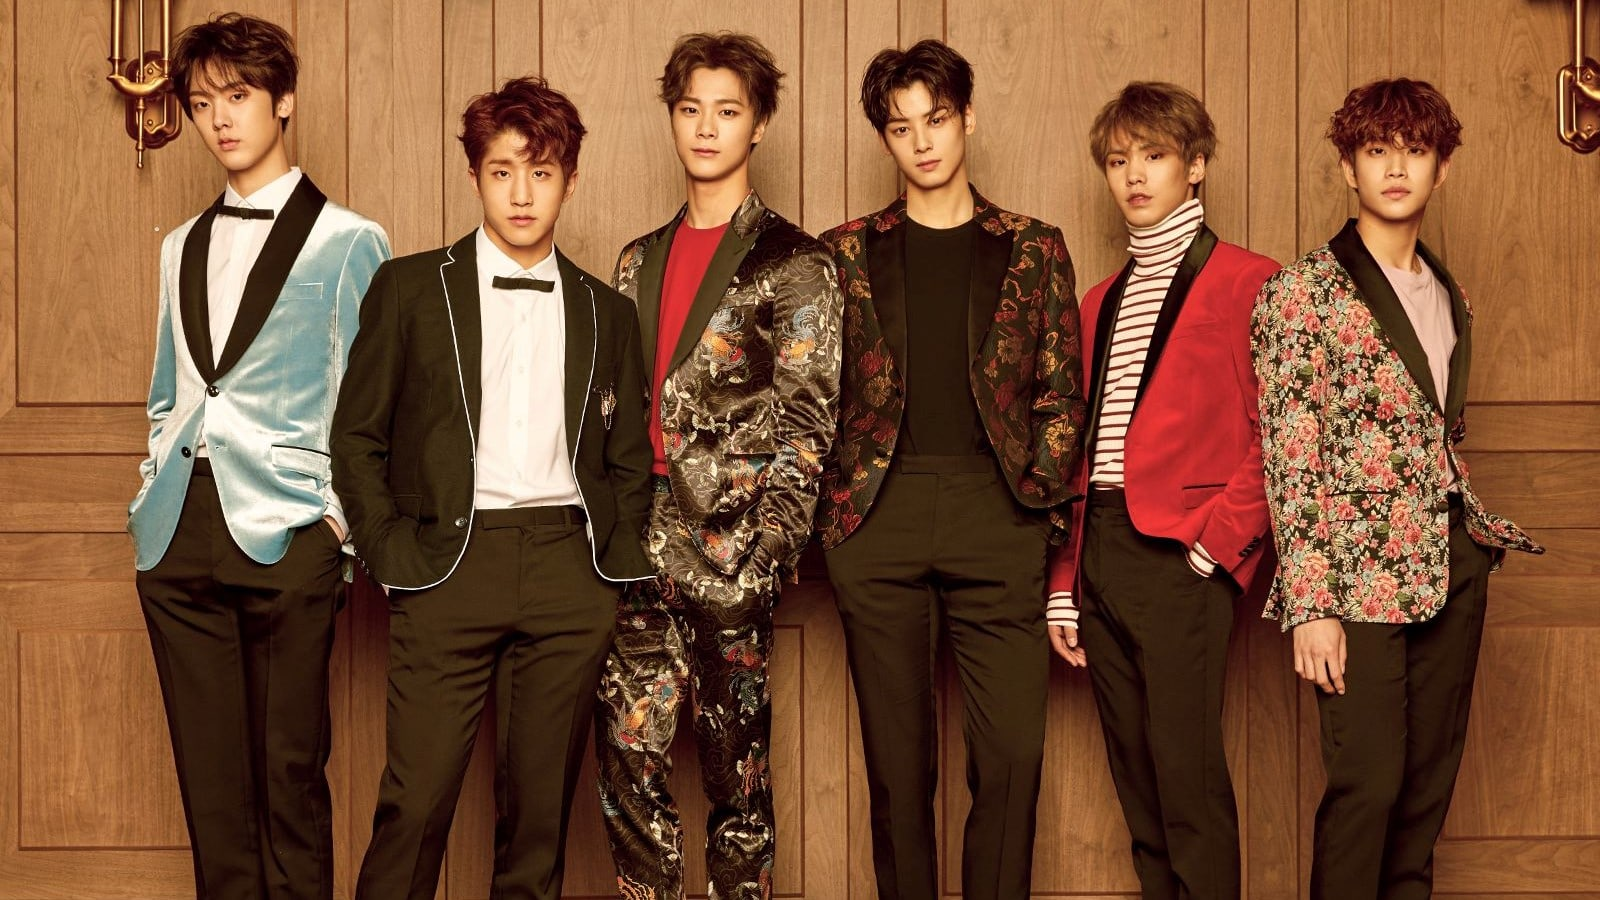 ASTRO On Their Upcoming Global Tour And Hopes For The Future